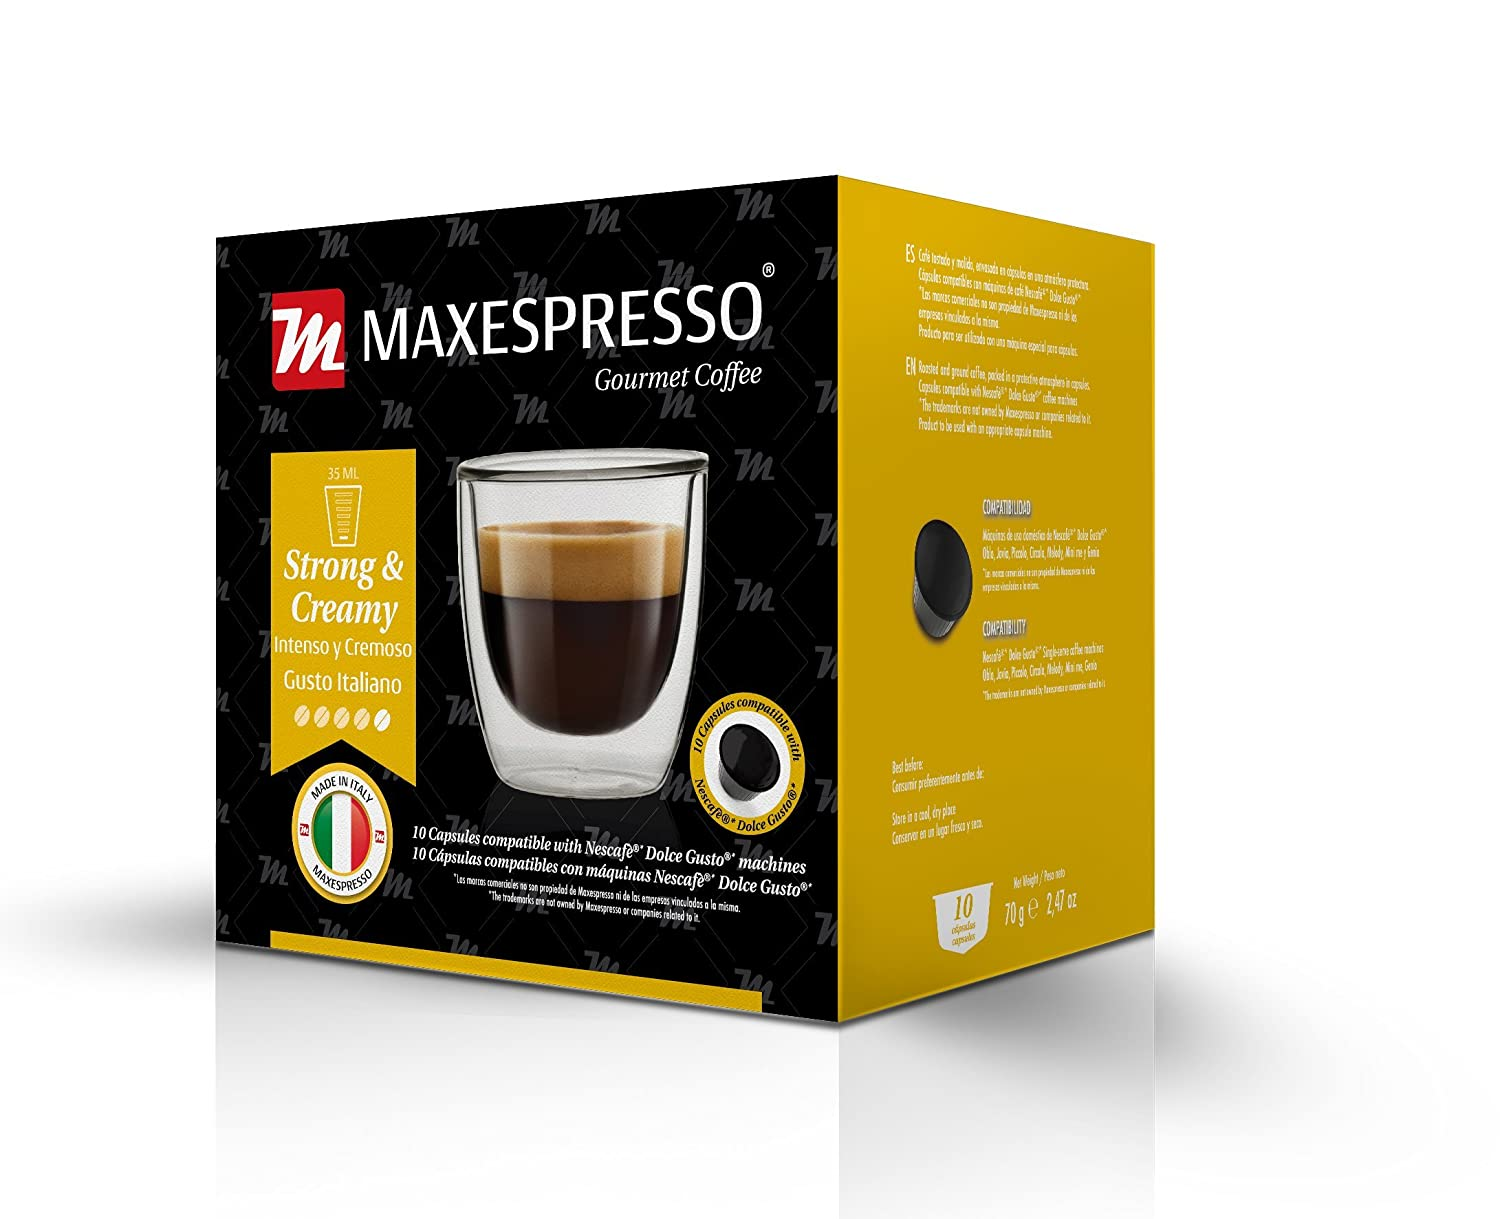 Nescafe Dolce Gusto Compatible Capsules, MaxEspresso Gourmet Coffee, Italian Quality Coffee (Caffelatte - Coffee and Milk, 10 Capsules): Amazon.com: Grocery ...